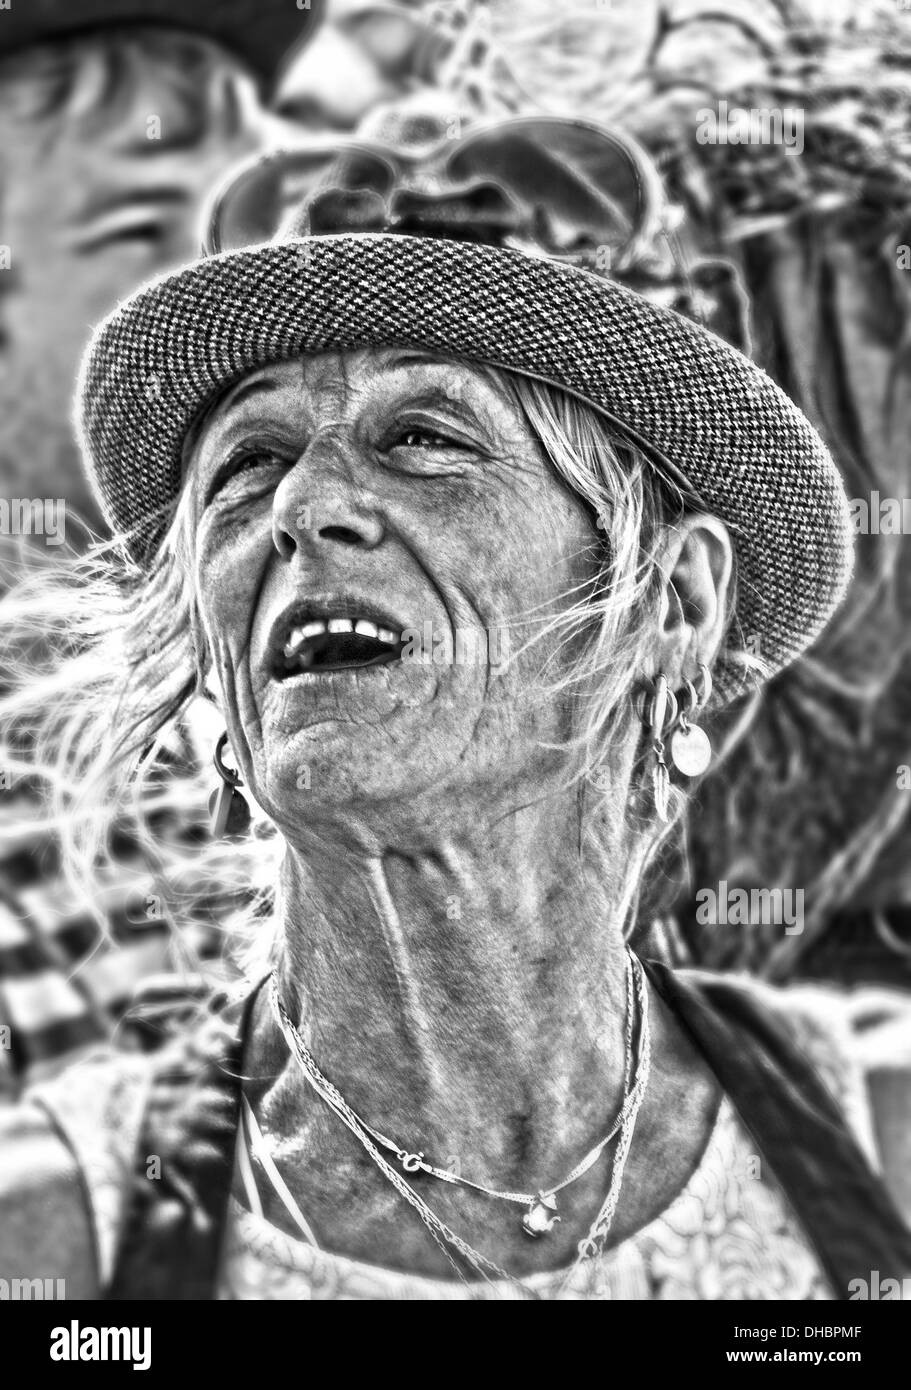 A black and white reportage style portrait of a white European female age 40-50 at a rock, music festival - Stock Image